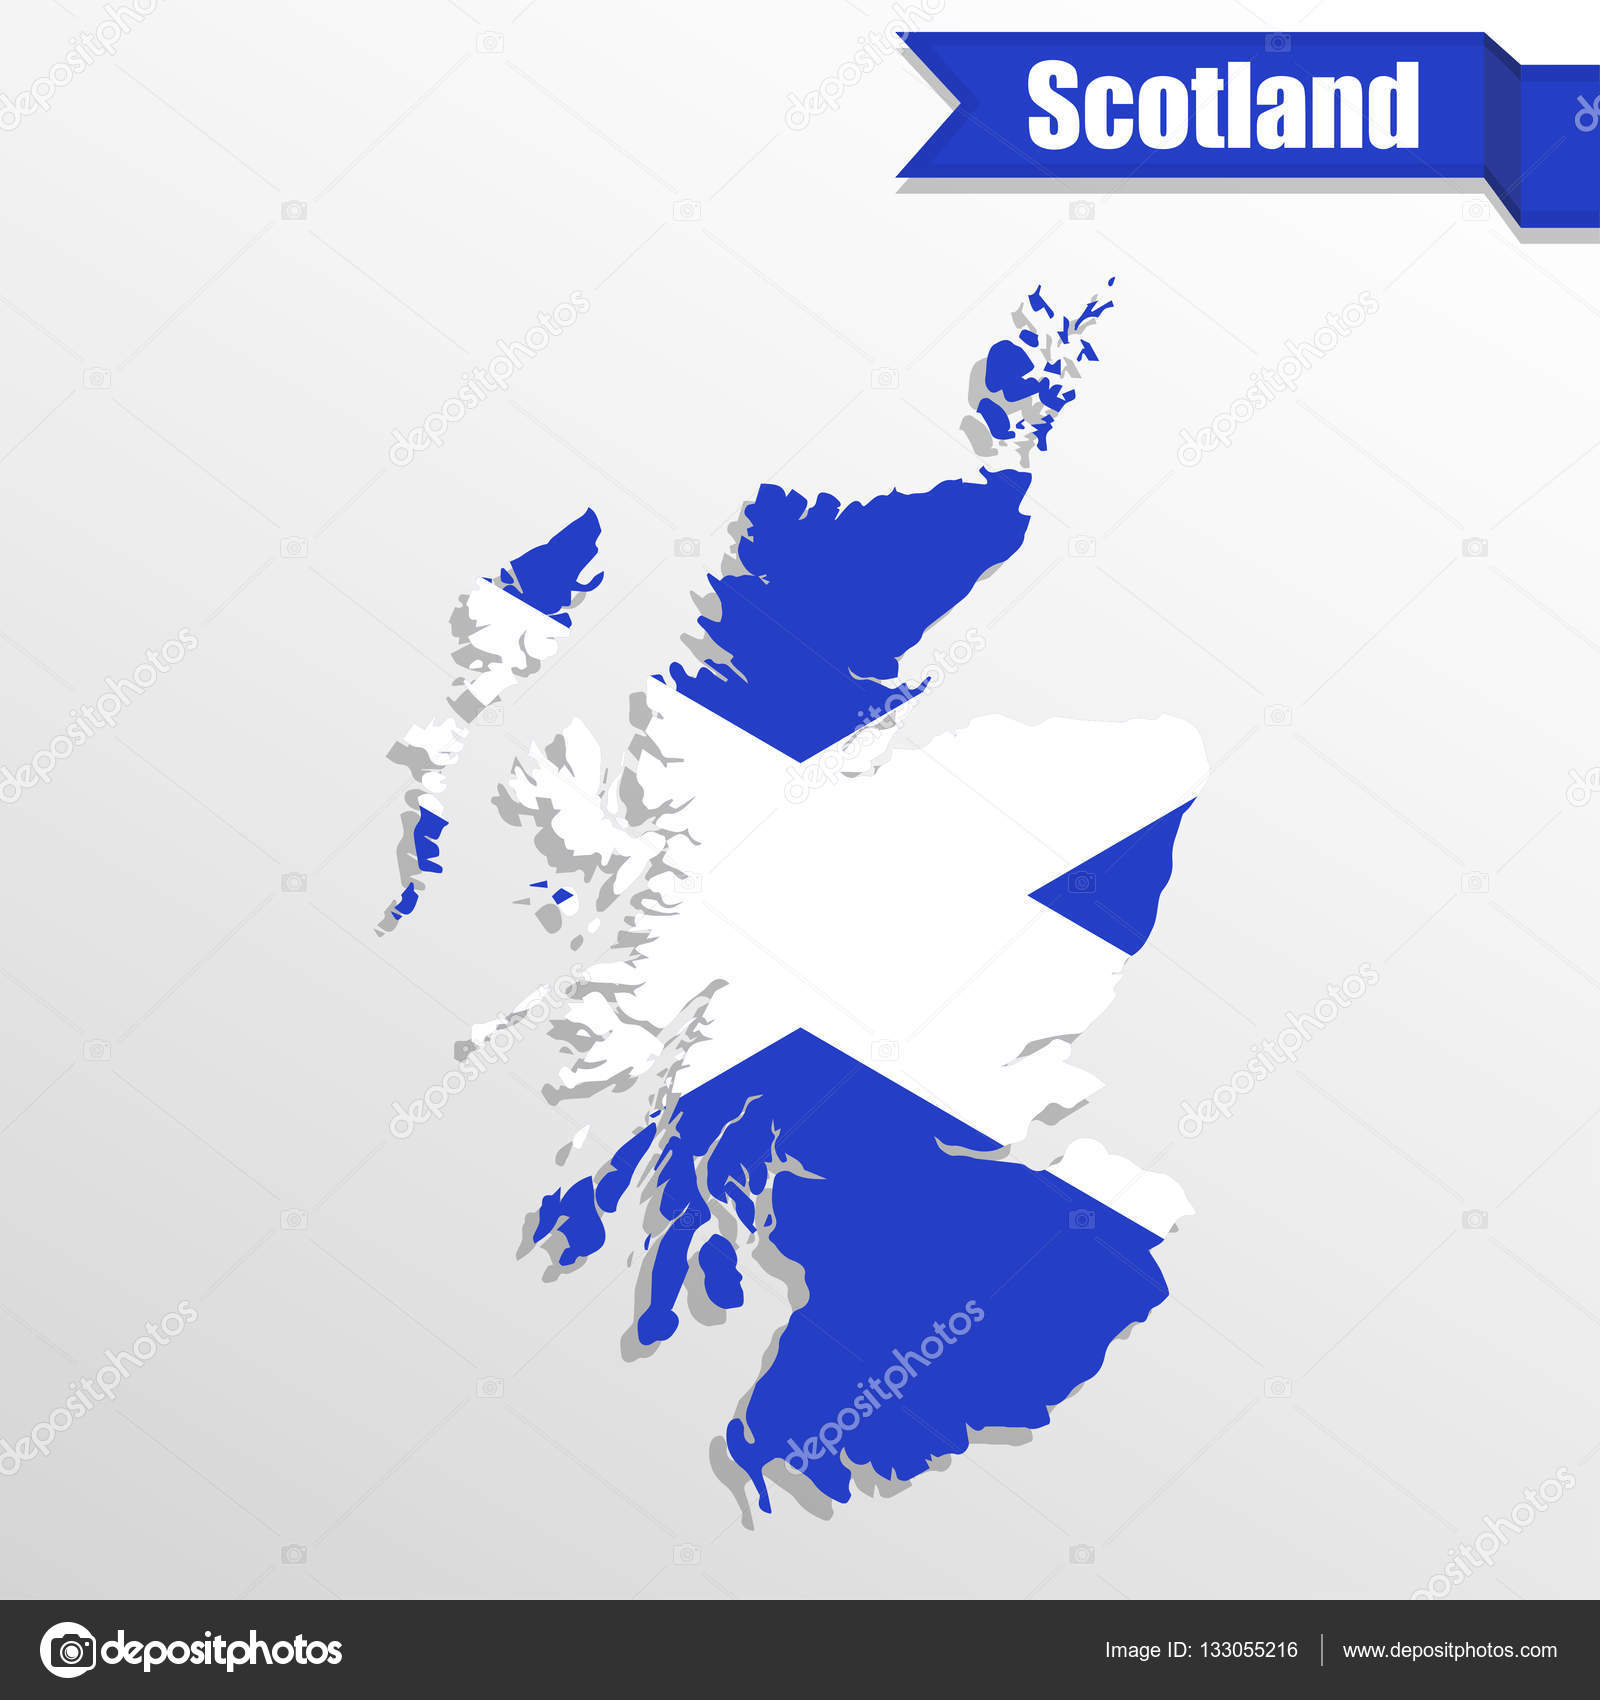 Scotland map with flag inside and ribbon — Stock Vector ... on mexico map, uk map, germany map, italy map, republic of ireland, northern ireland, scottish people, portugal map, british isles map, europe map, great britain, orkney islands map, edinburgh castle, isle of wight map, flag of scotland, britain map, united kingdom, england map, loch ness, poland map, wales map, luxembourg map, basque country map, scottish highlands, greece map, france map, isle of man, ireland map, william wallace, united kingdom map, australia map,